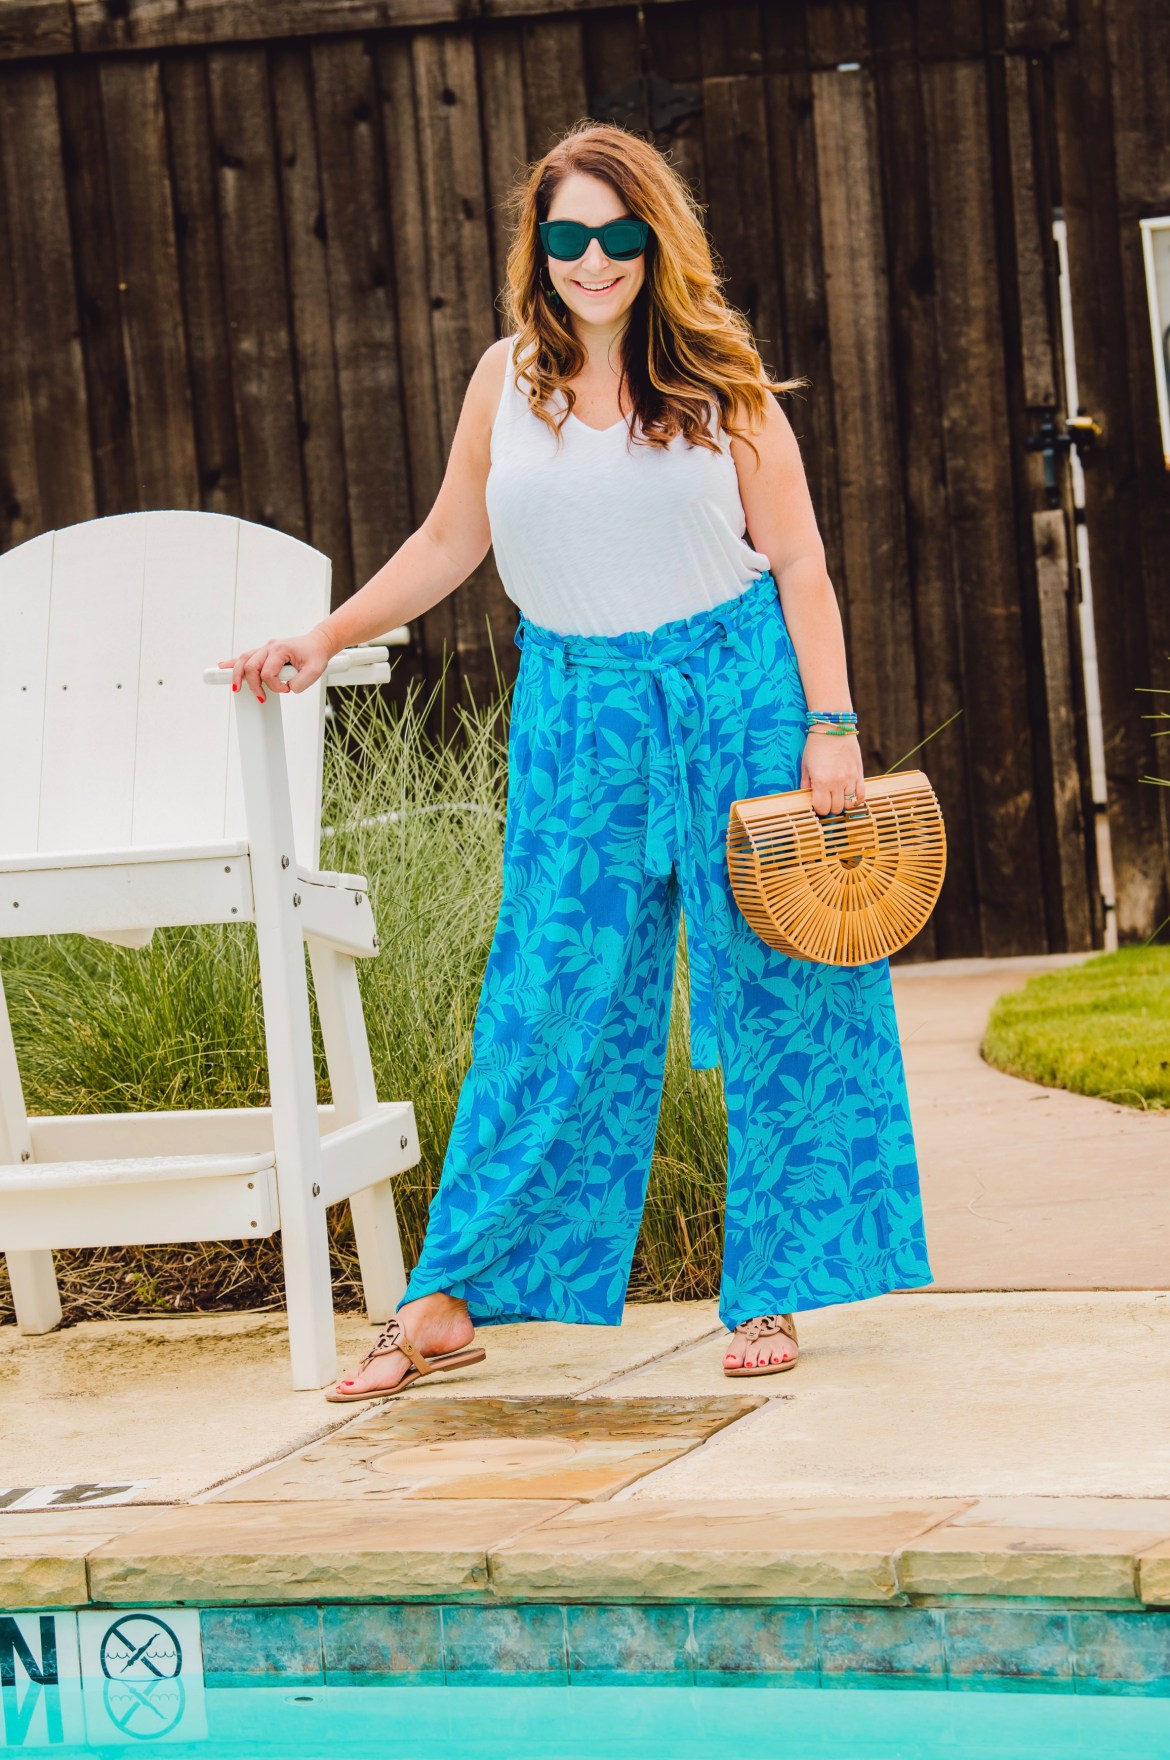 Wide Leg Paper Bag Pant in blue floral print perfect for summer. GibsonxHiSugarplum collection Summer 2019